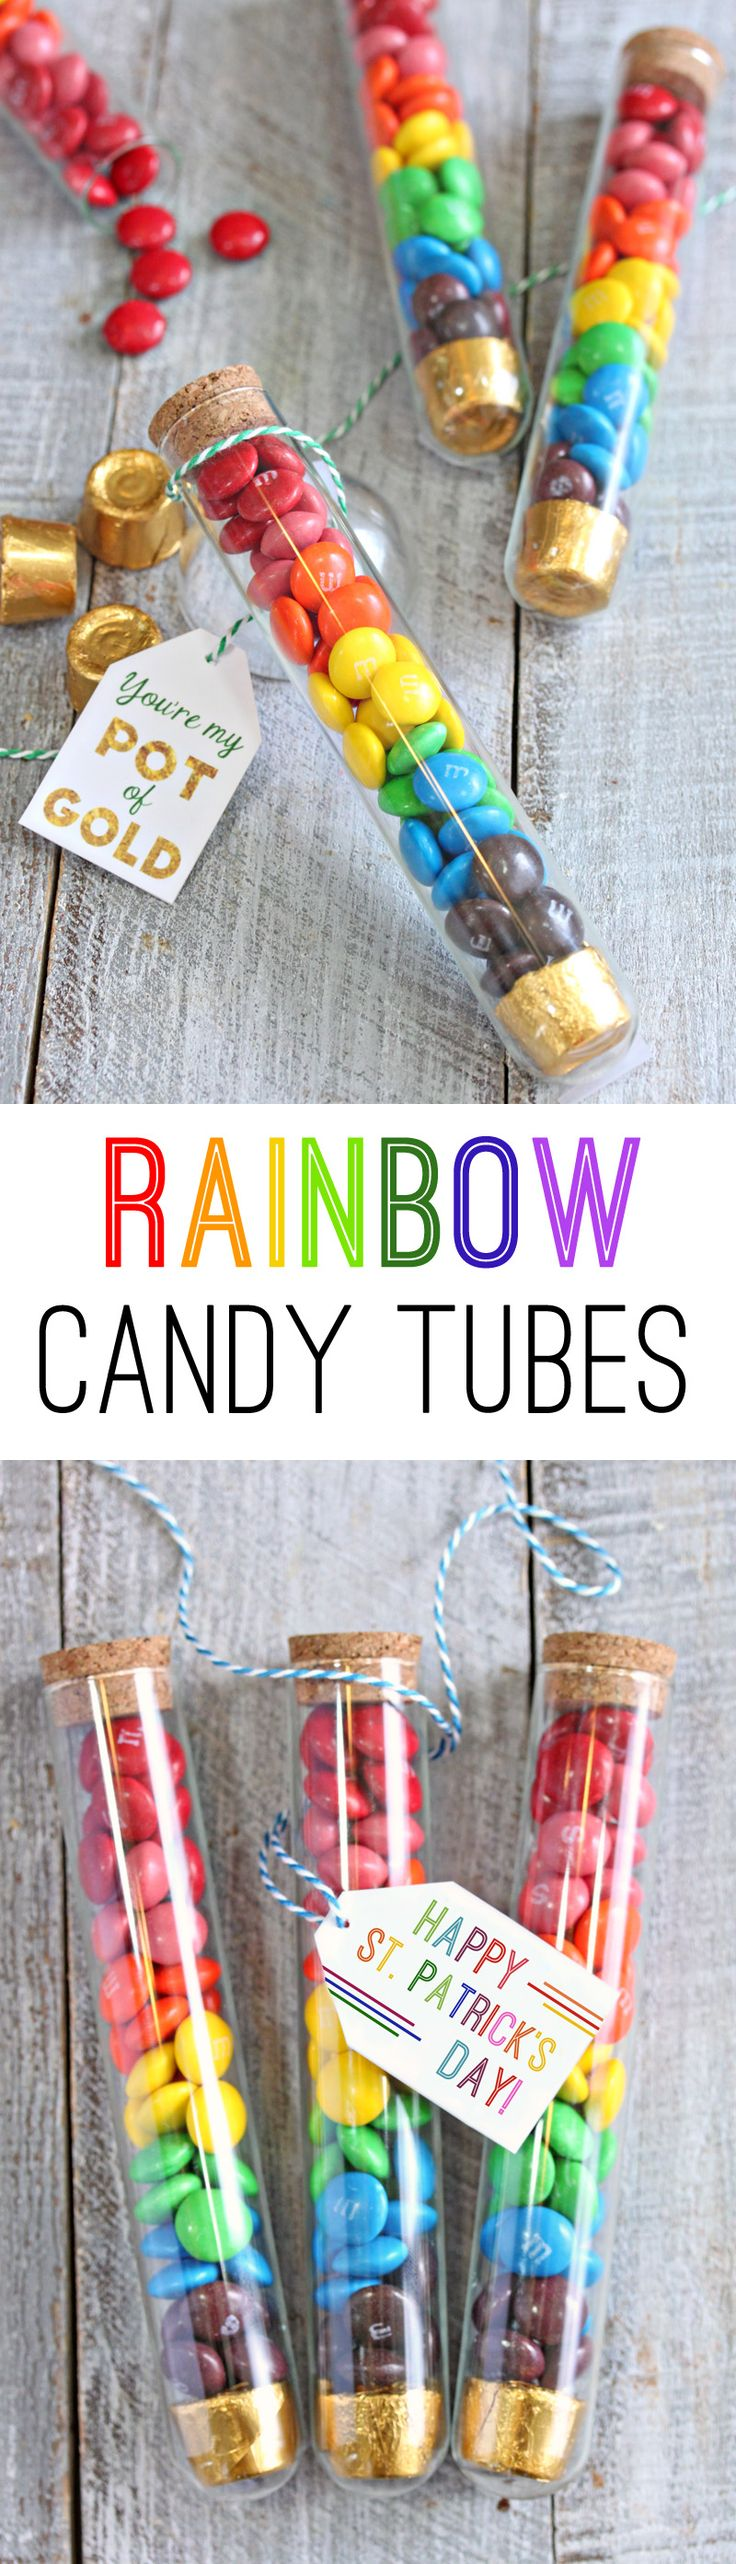 Rainbow Candy Tubes are an easy St. Patrick's Day gift idea. Get these two printable gift tags for free and make them this year! | From candy.about.com